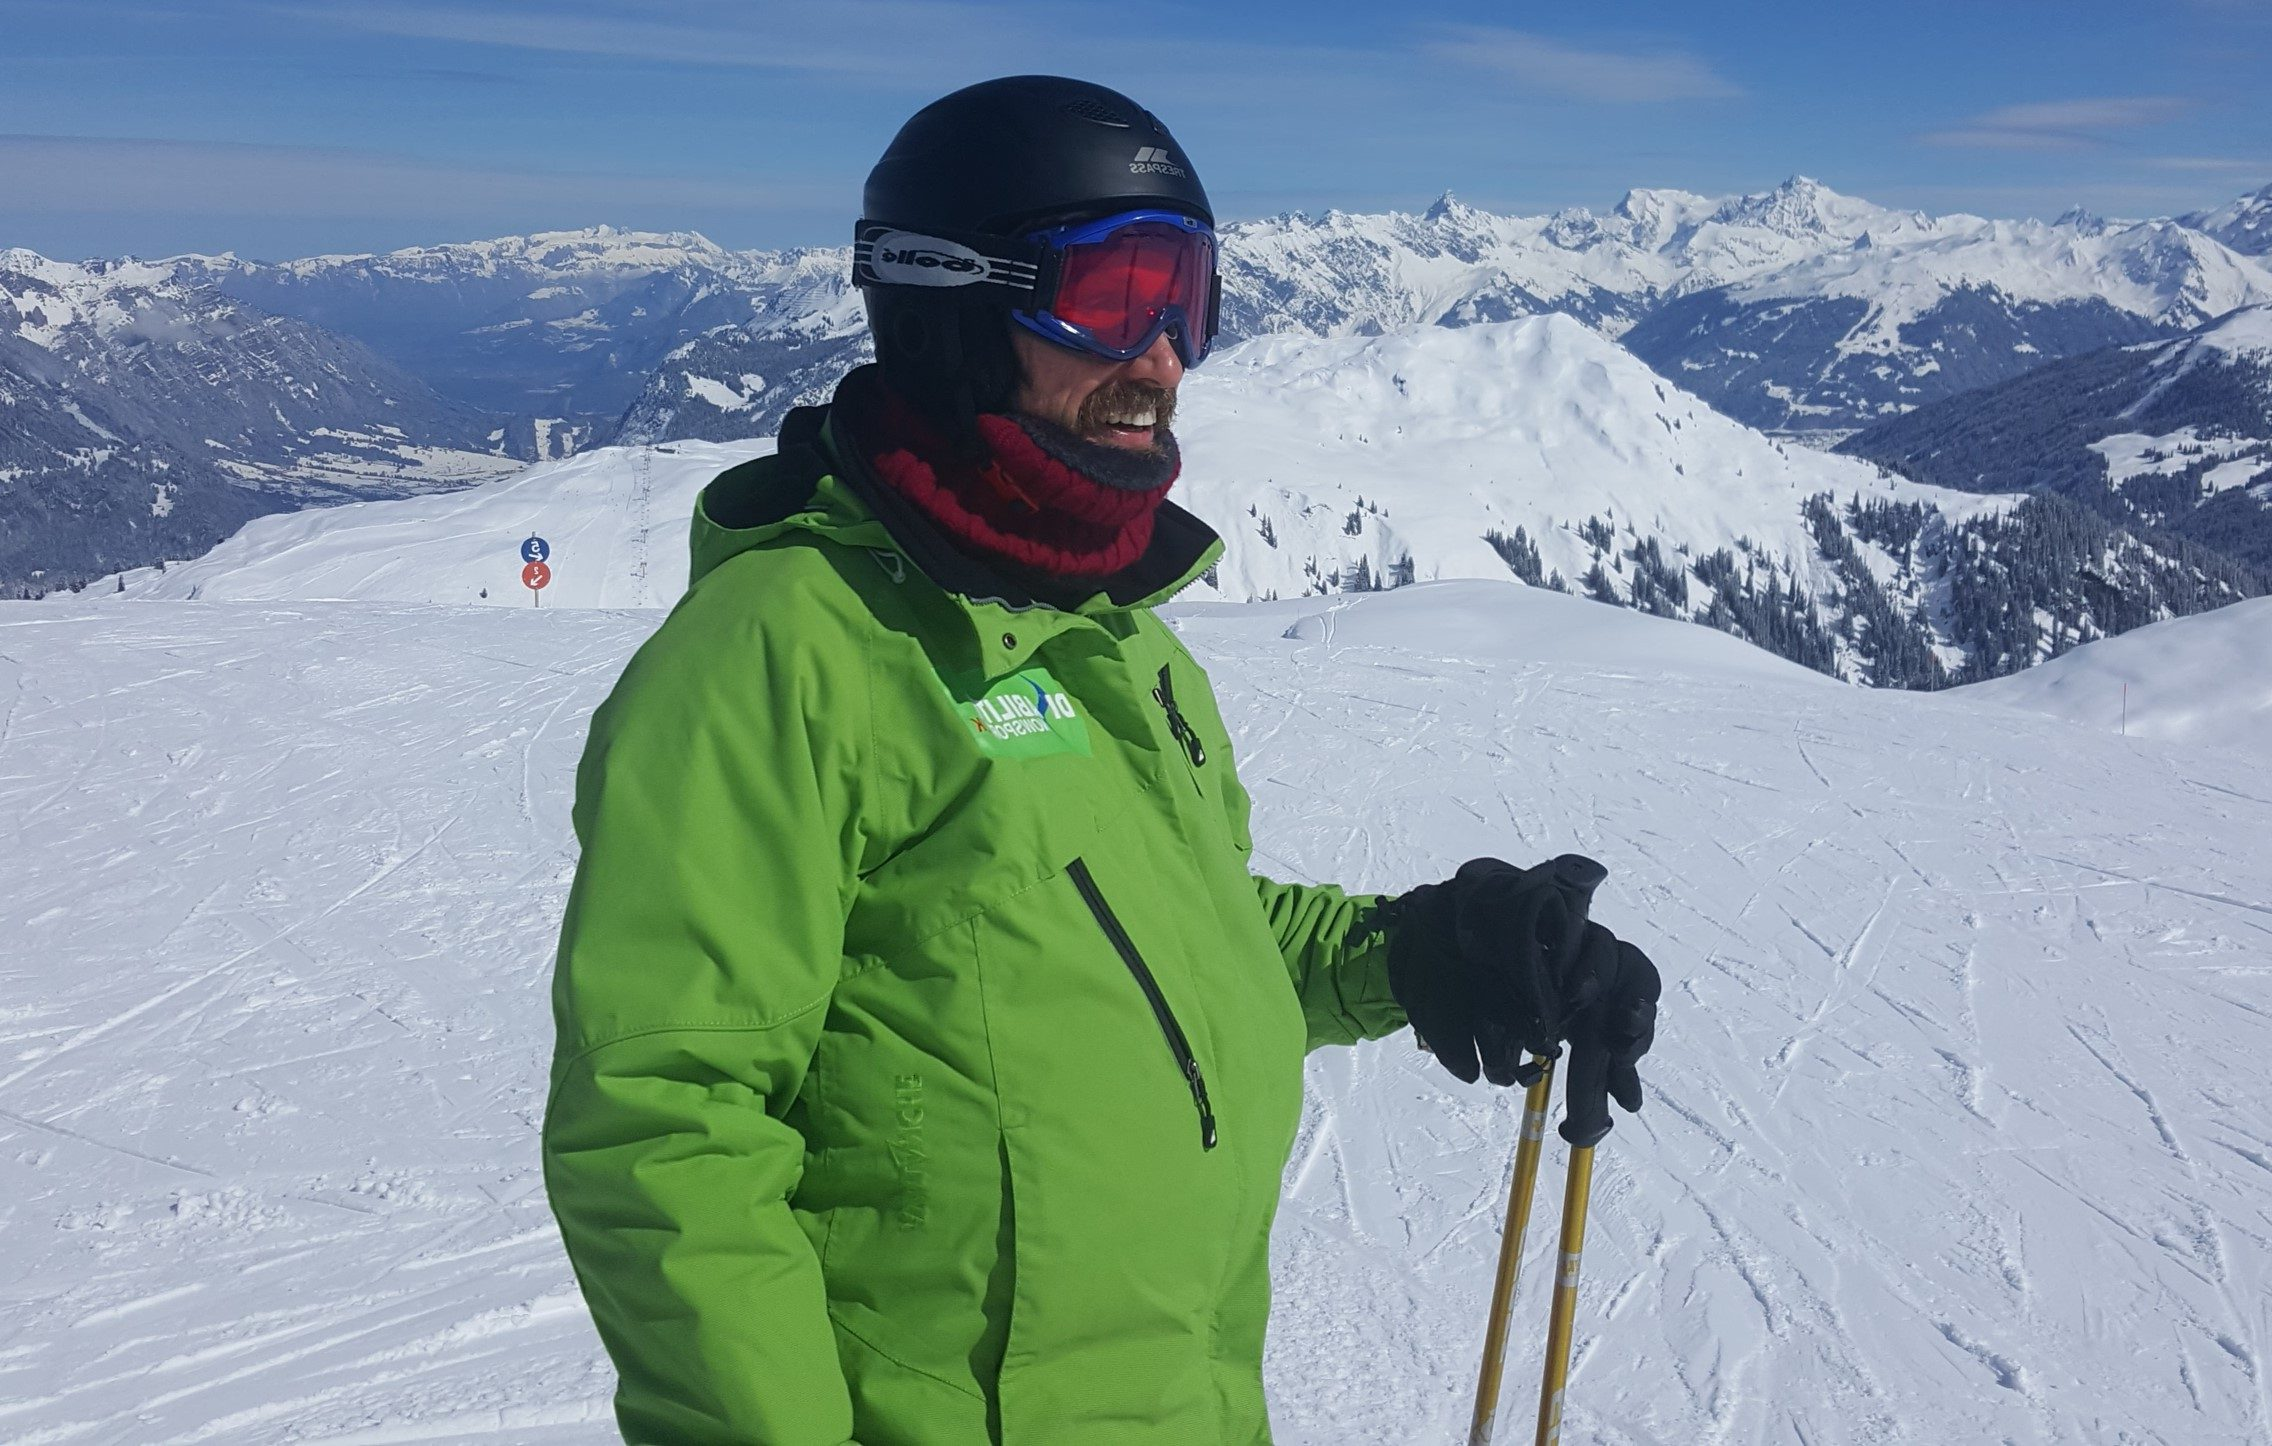 INGHAMS SKI HOLIDAYS, AND THEIR SUPPORT FOR DISABLED TRAVELERS